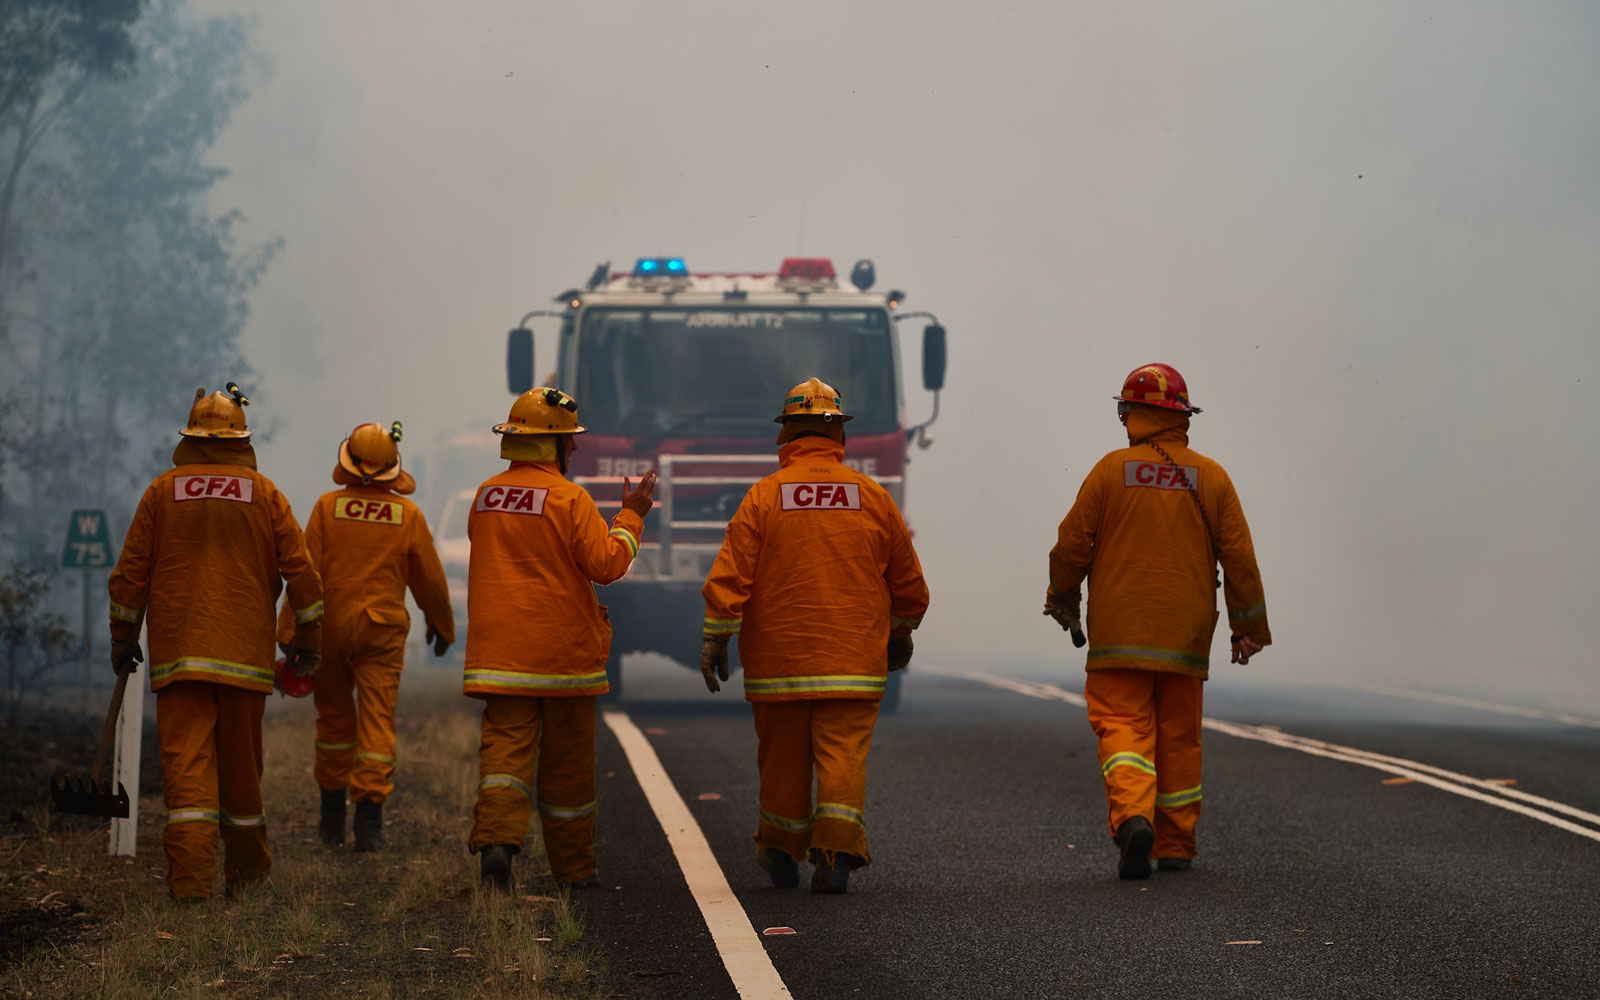 Royal Caribbean Is Treating Australian First Responders to a Free Cruise Following Bushfires